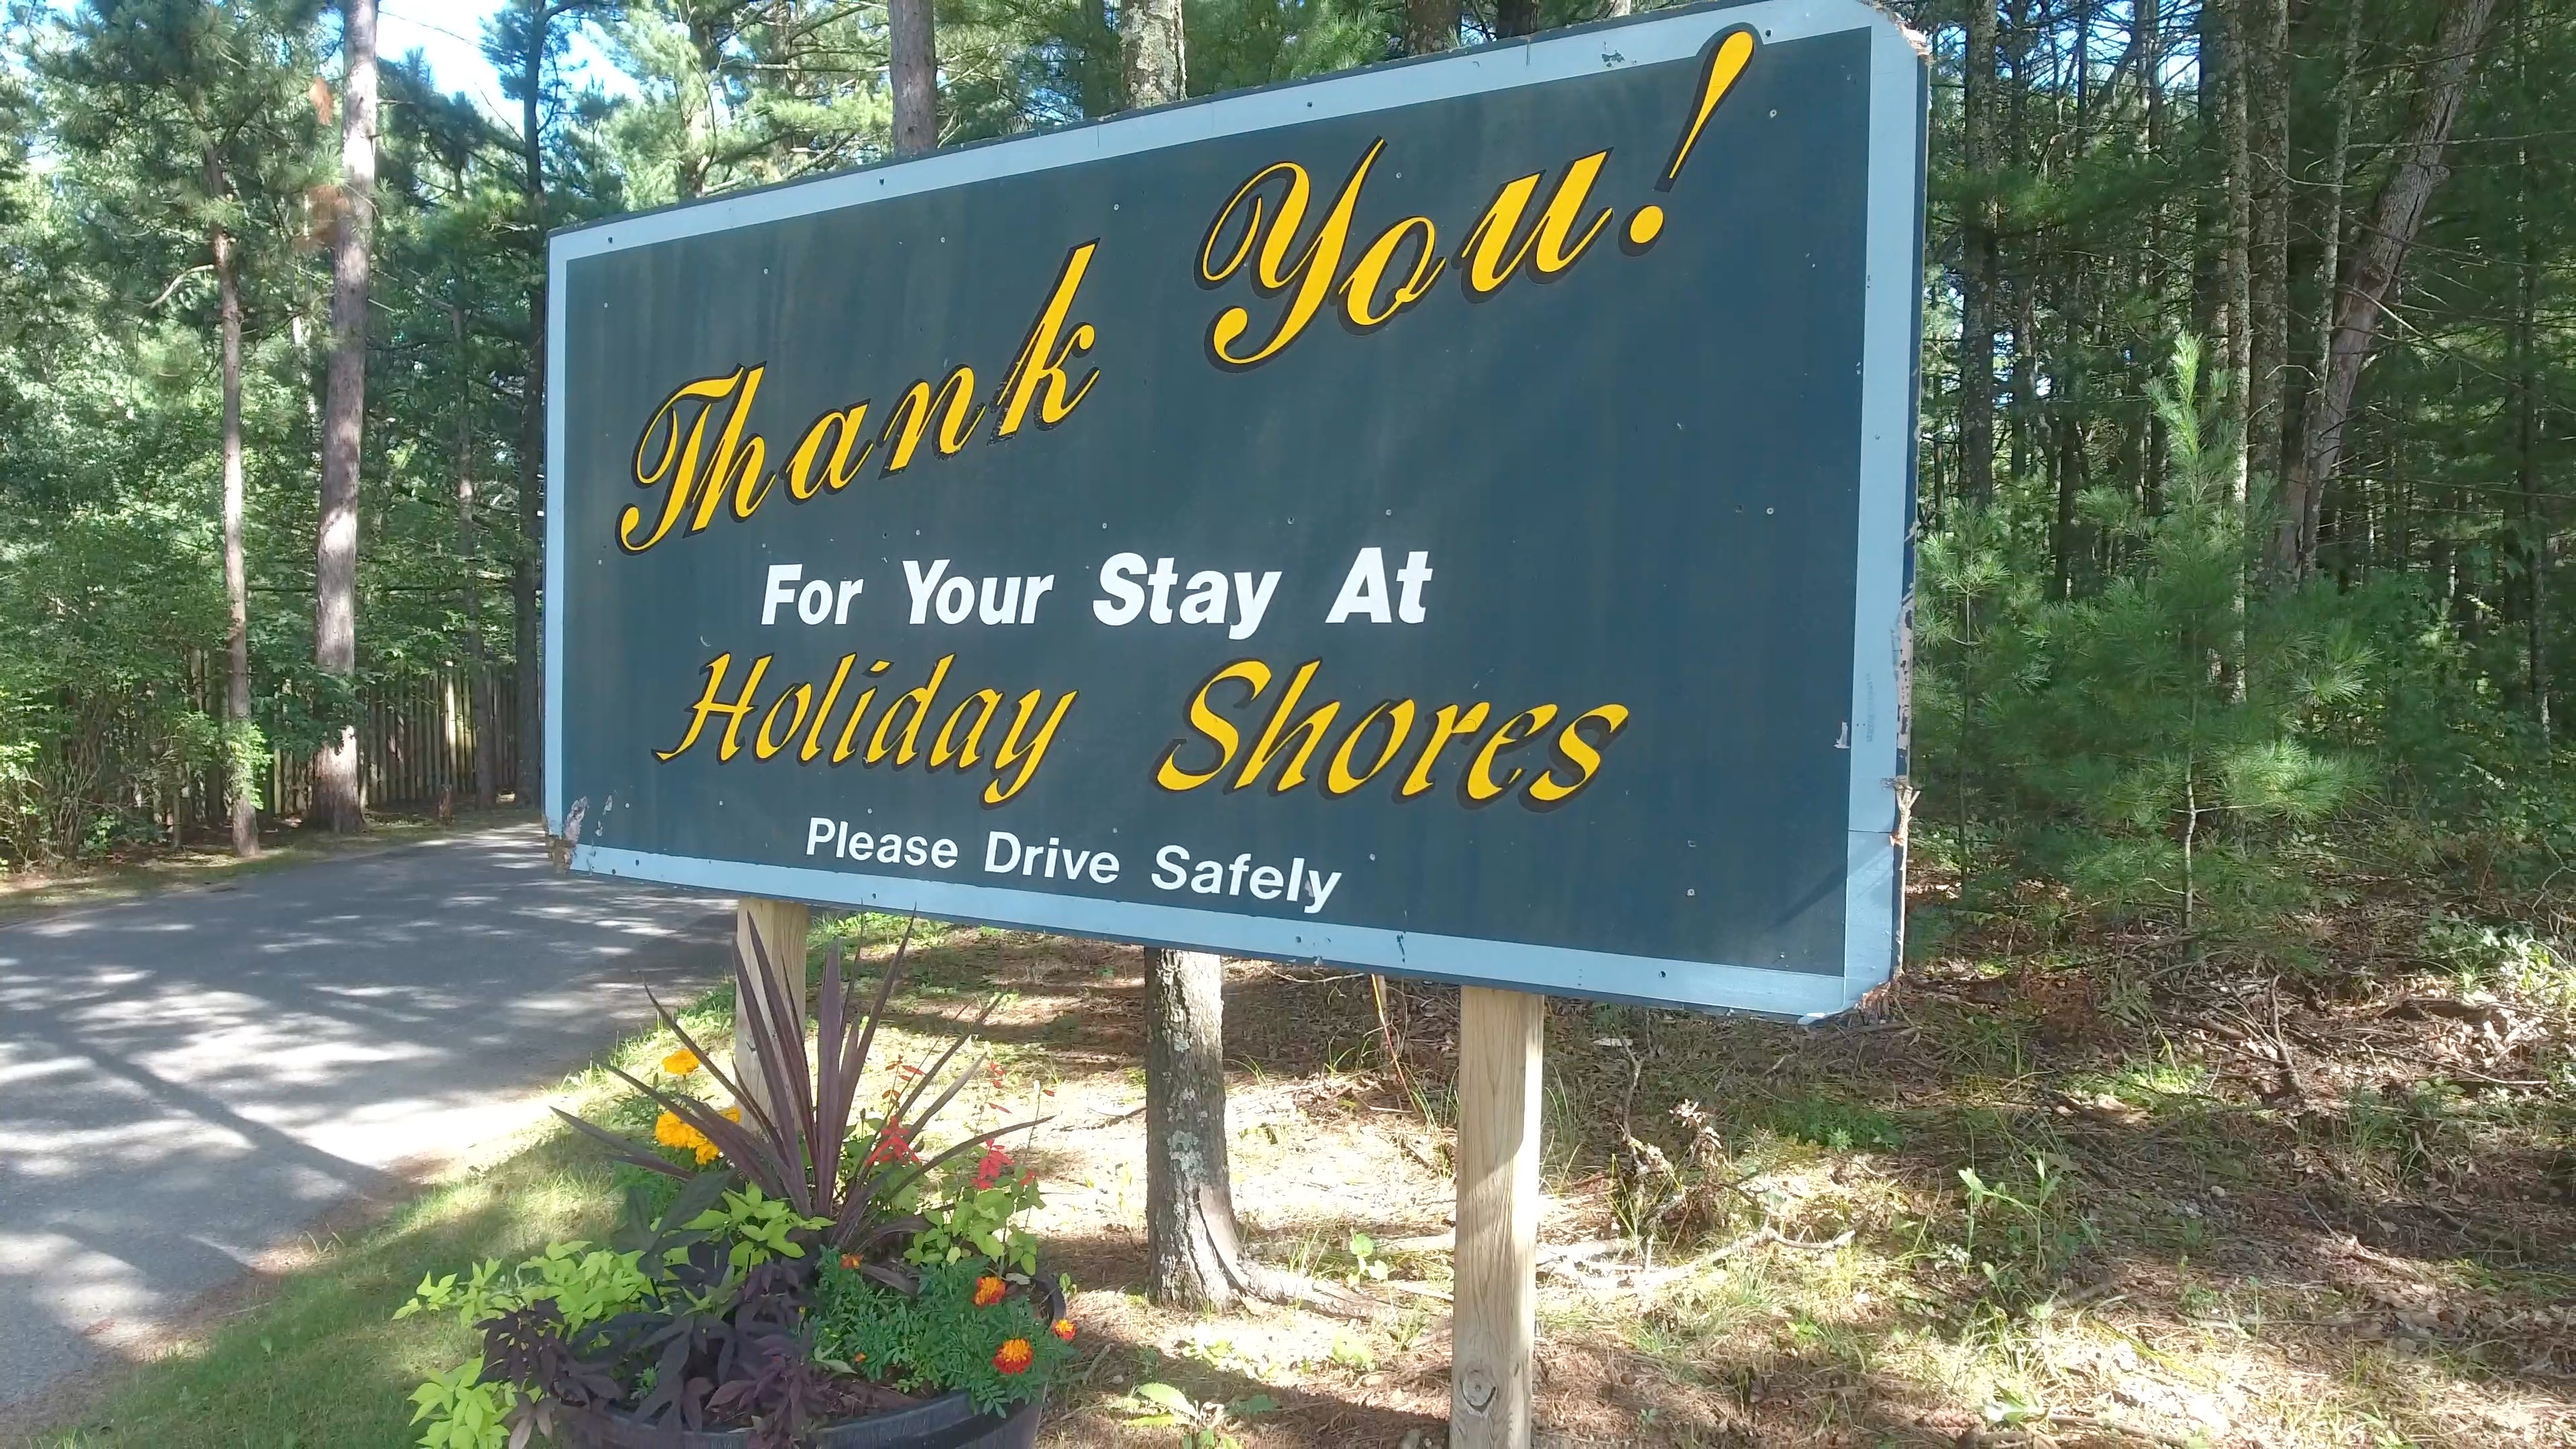 holiday shores thank you sign